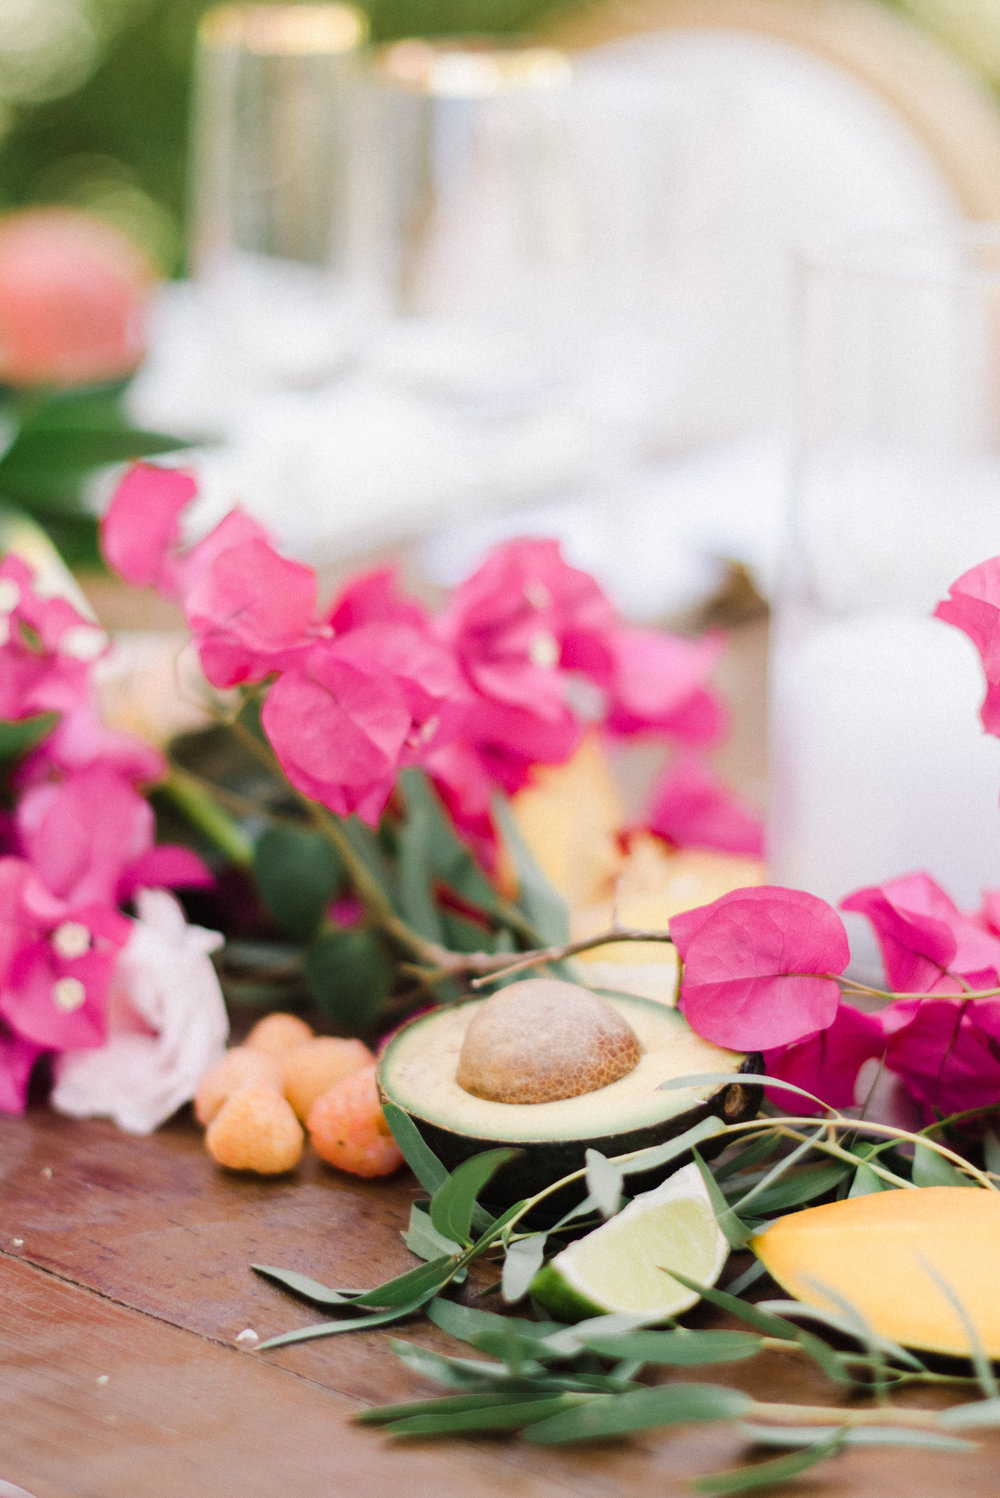 bougainvillea wedding florals and pineapple for tropical wedding .jpg